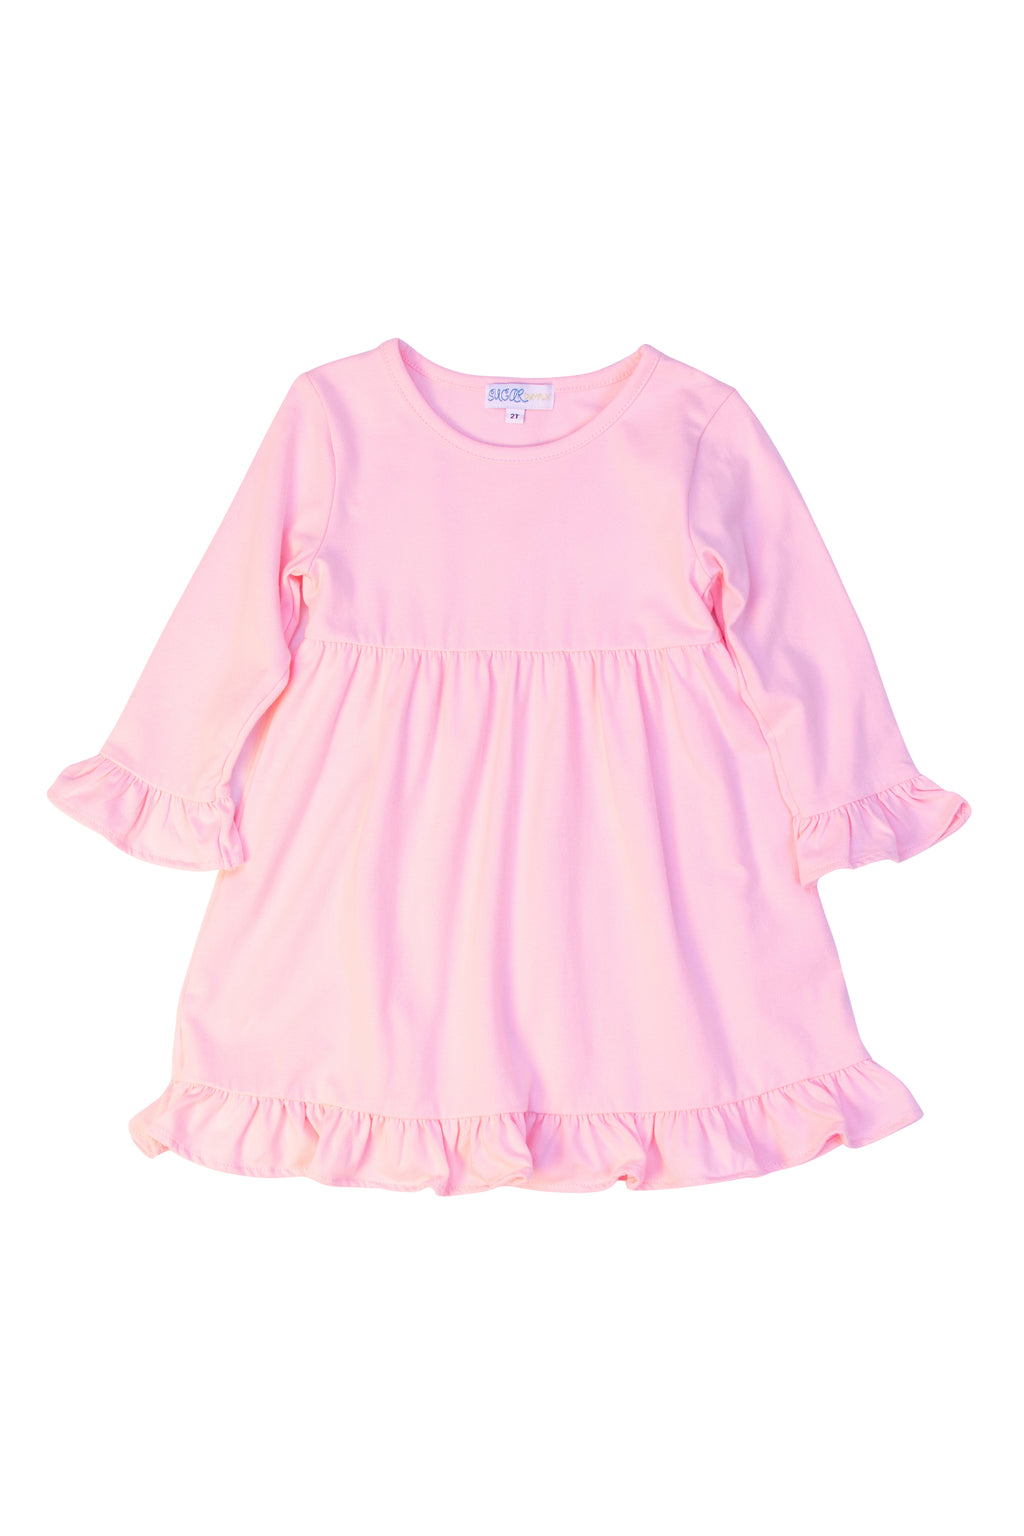 Girls Pink Knit Dress